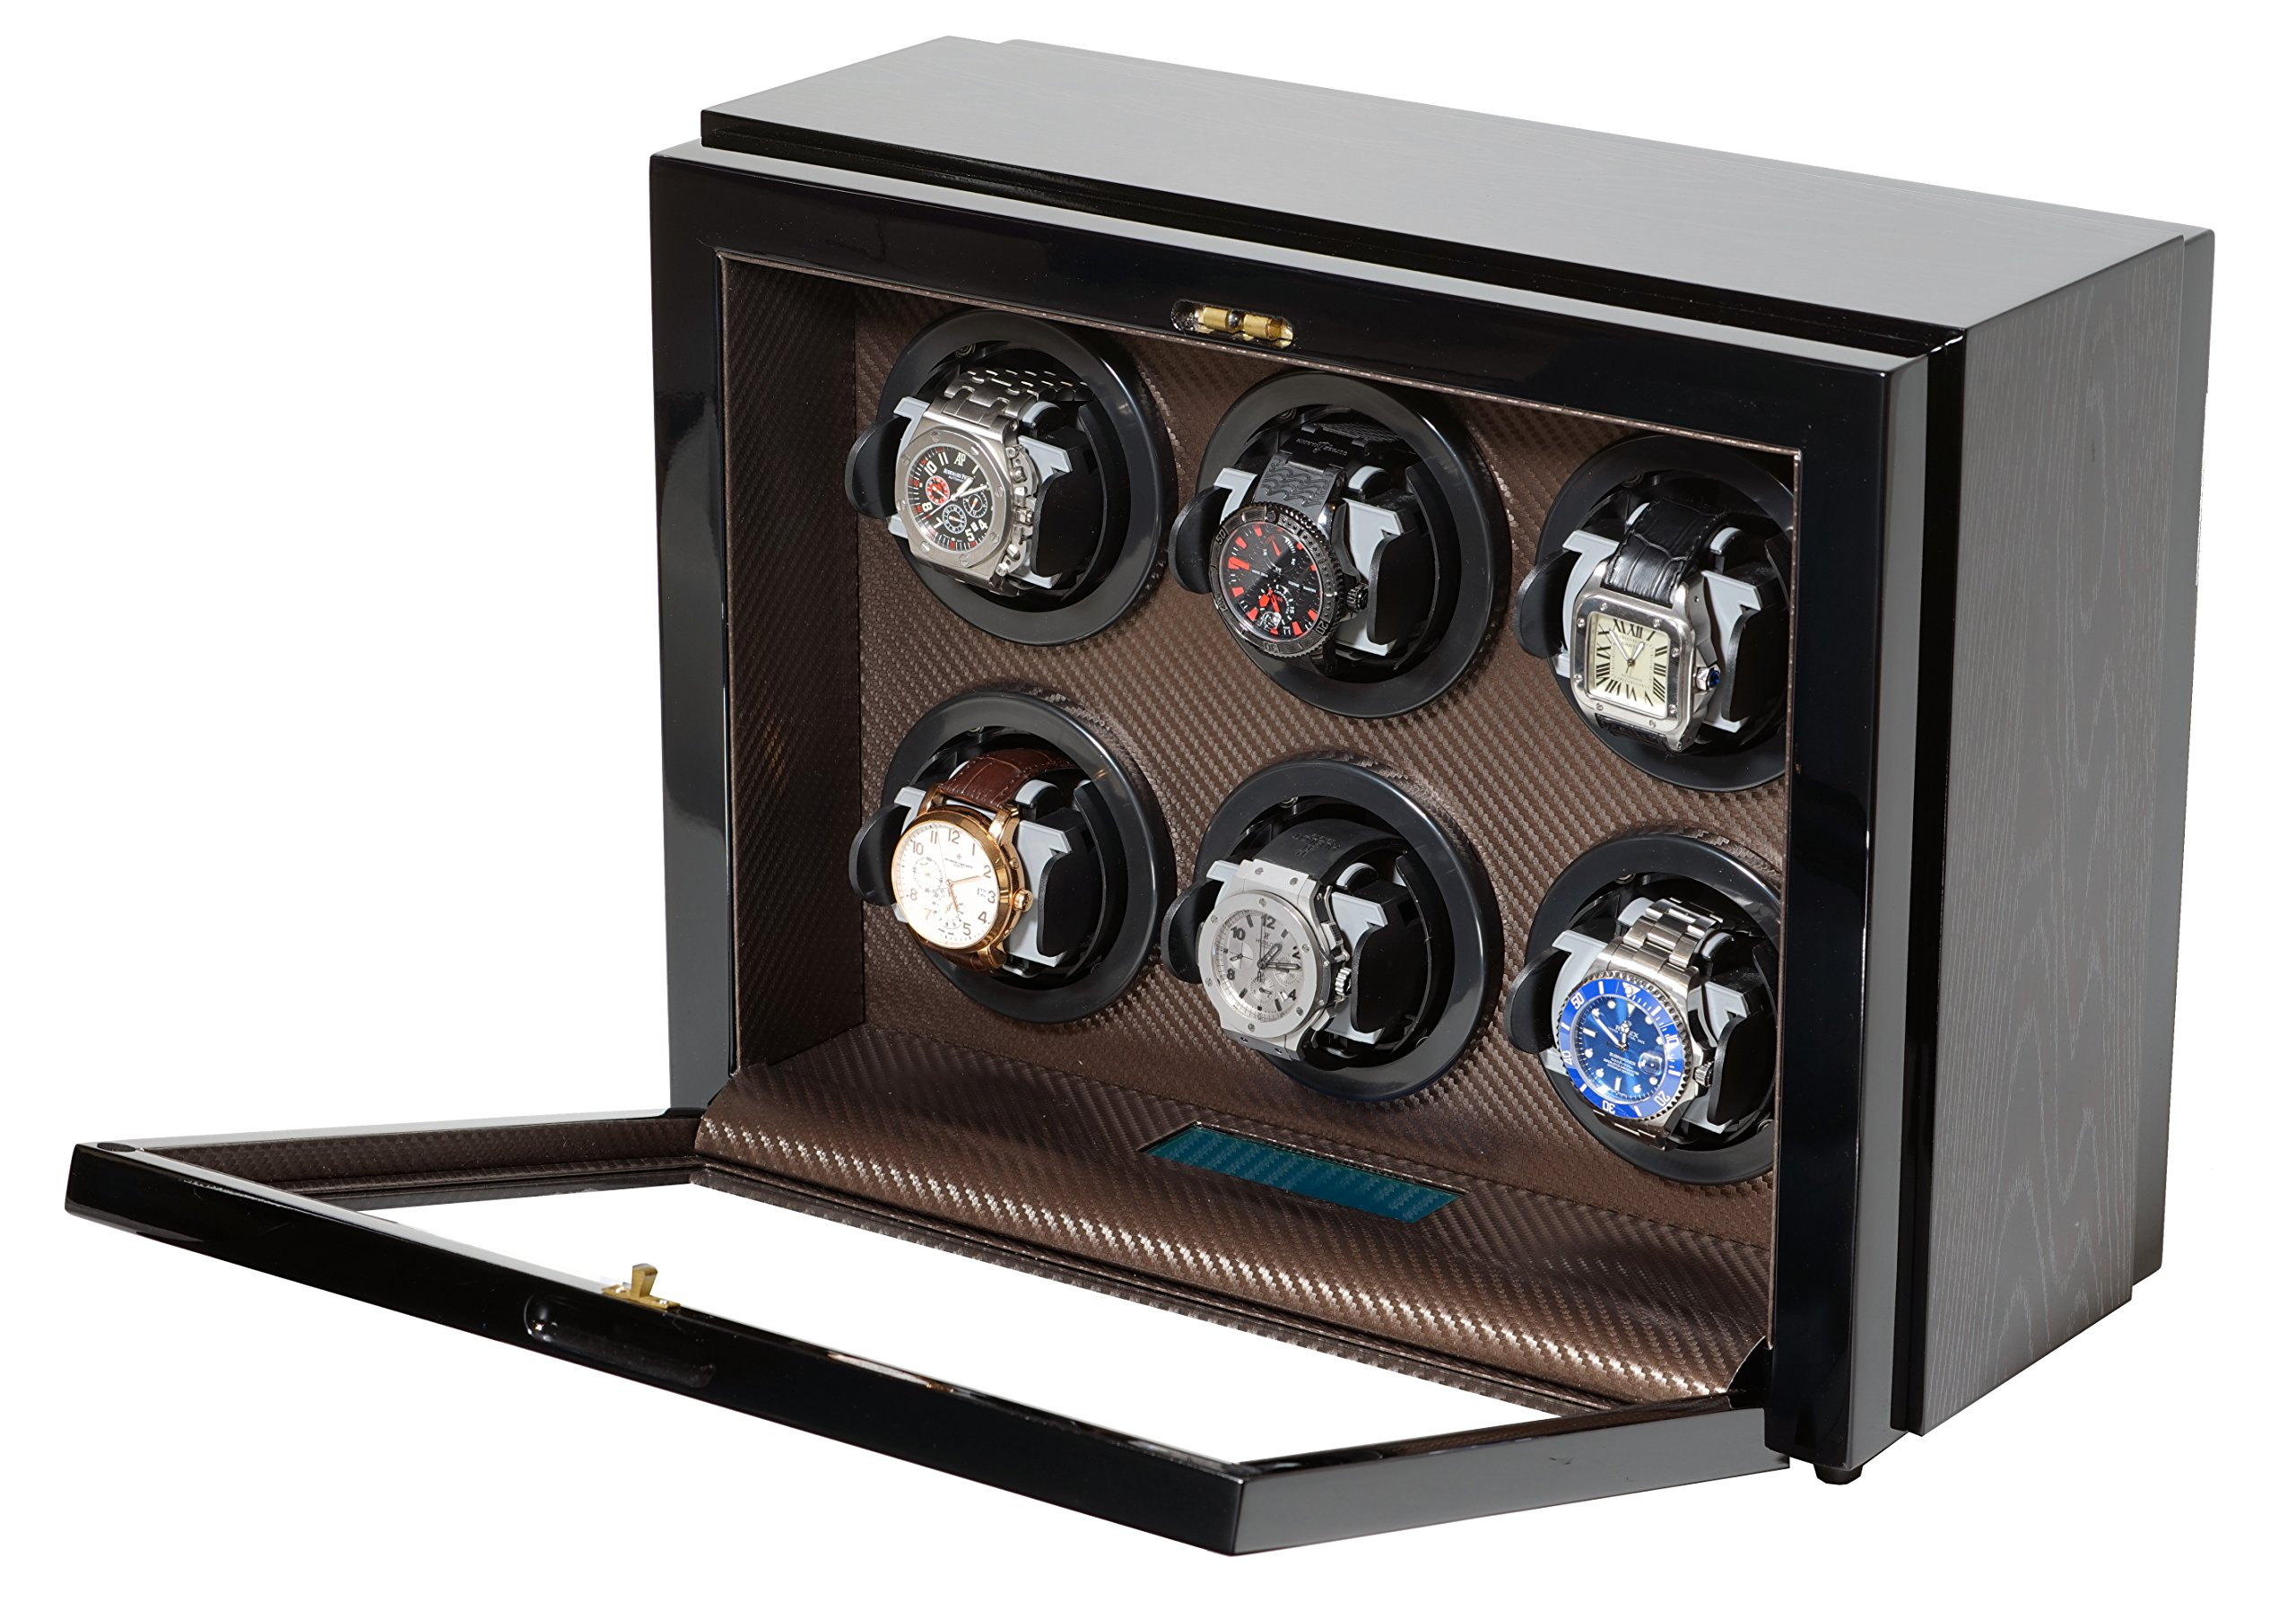 Belocia automatic watch winder for self winding wathces like Rolex, Omega, Breitling, Hublot and more